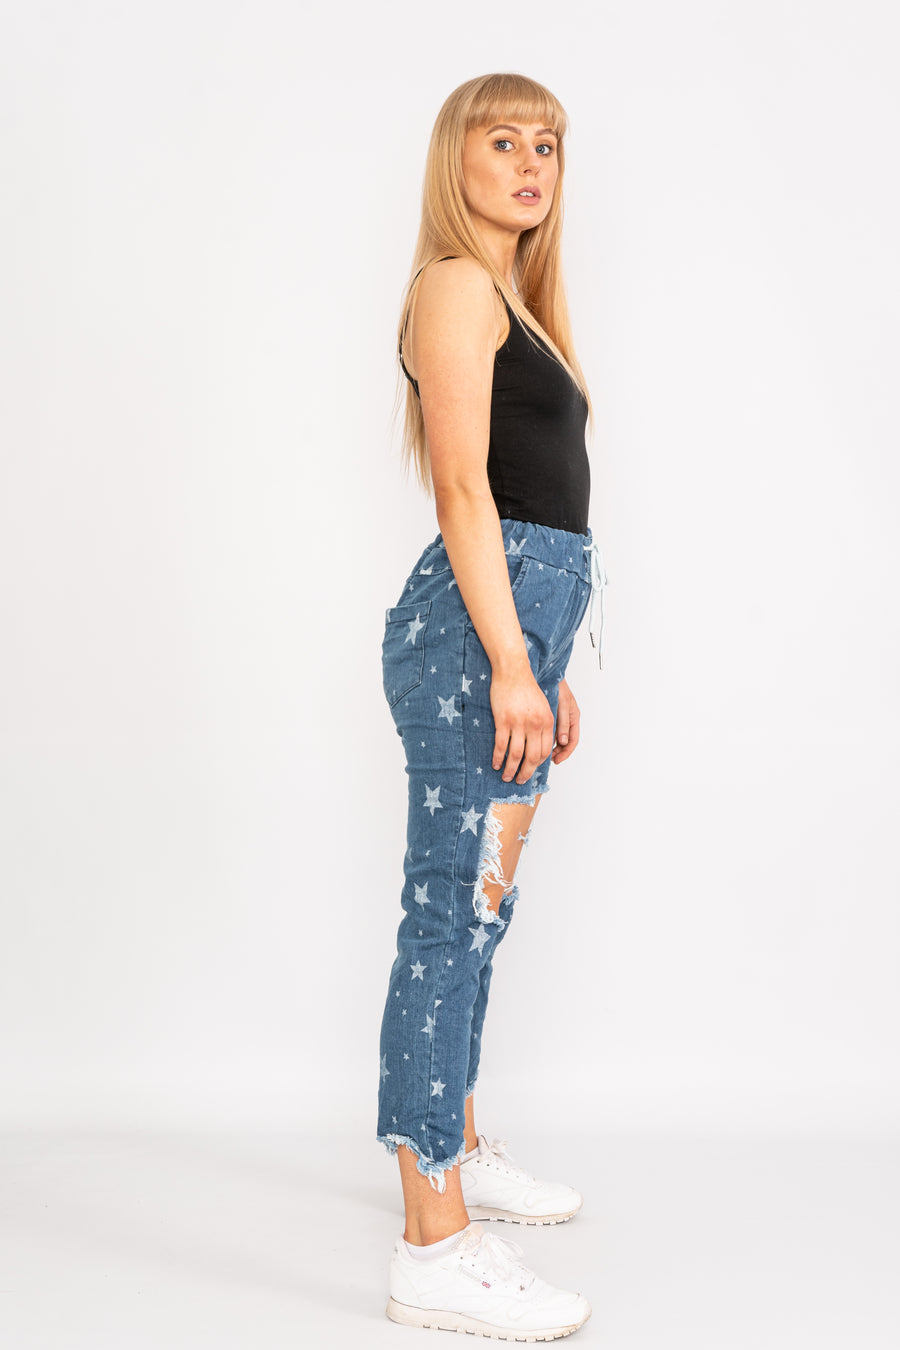 Ripped star patterned denim jeans.